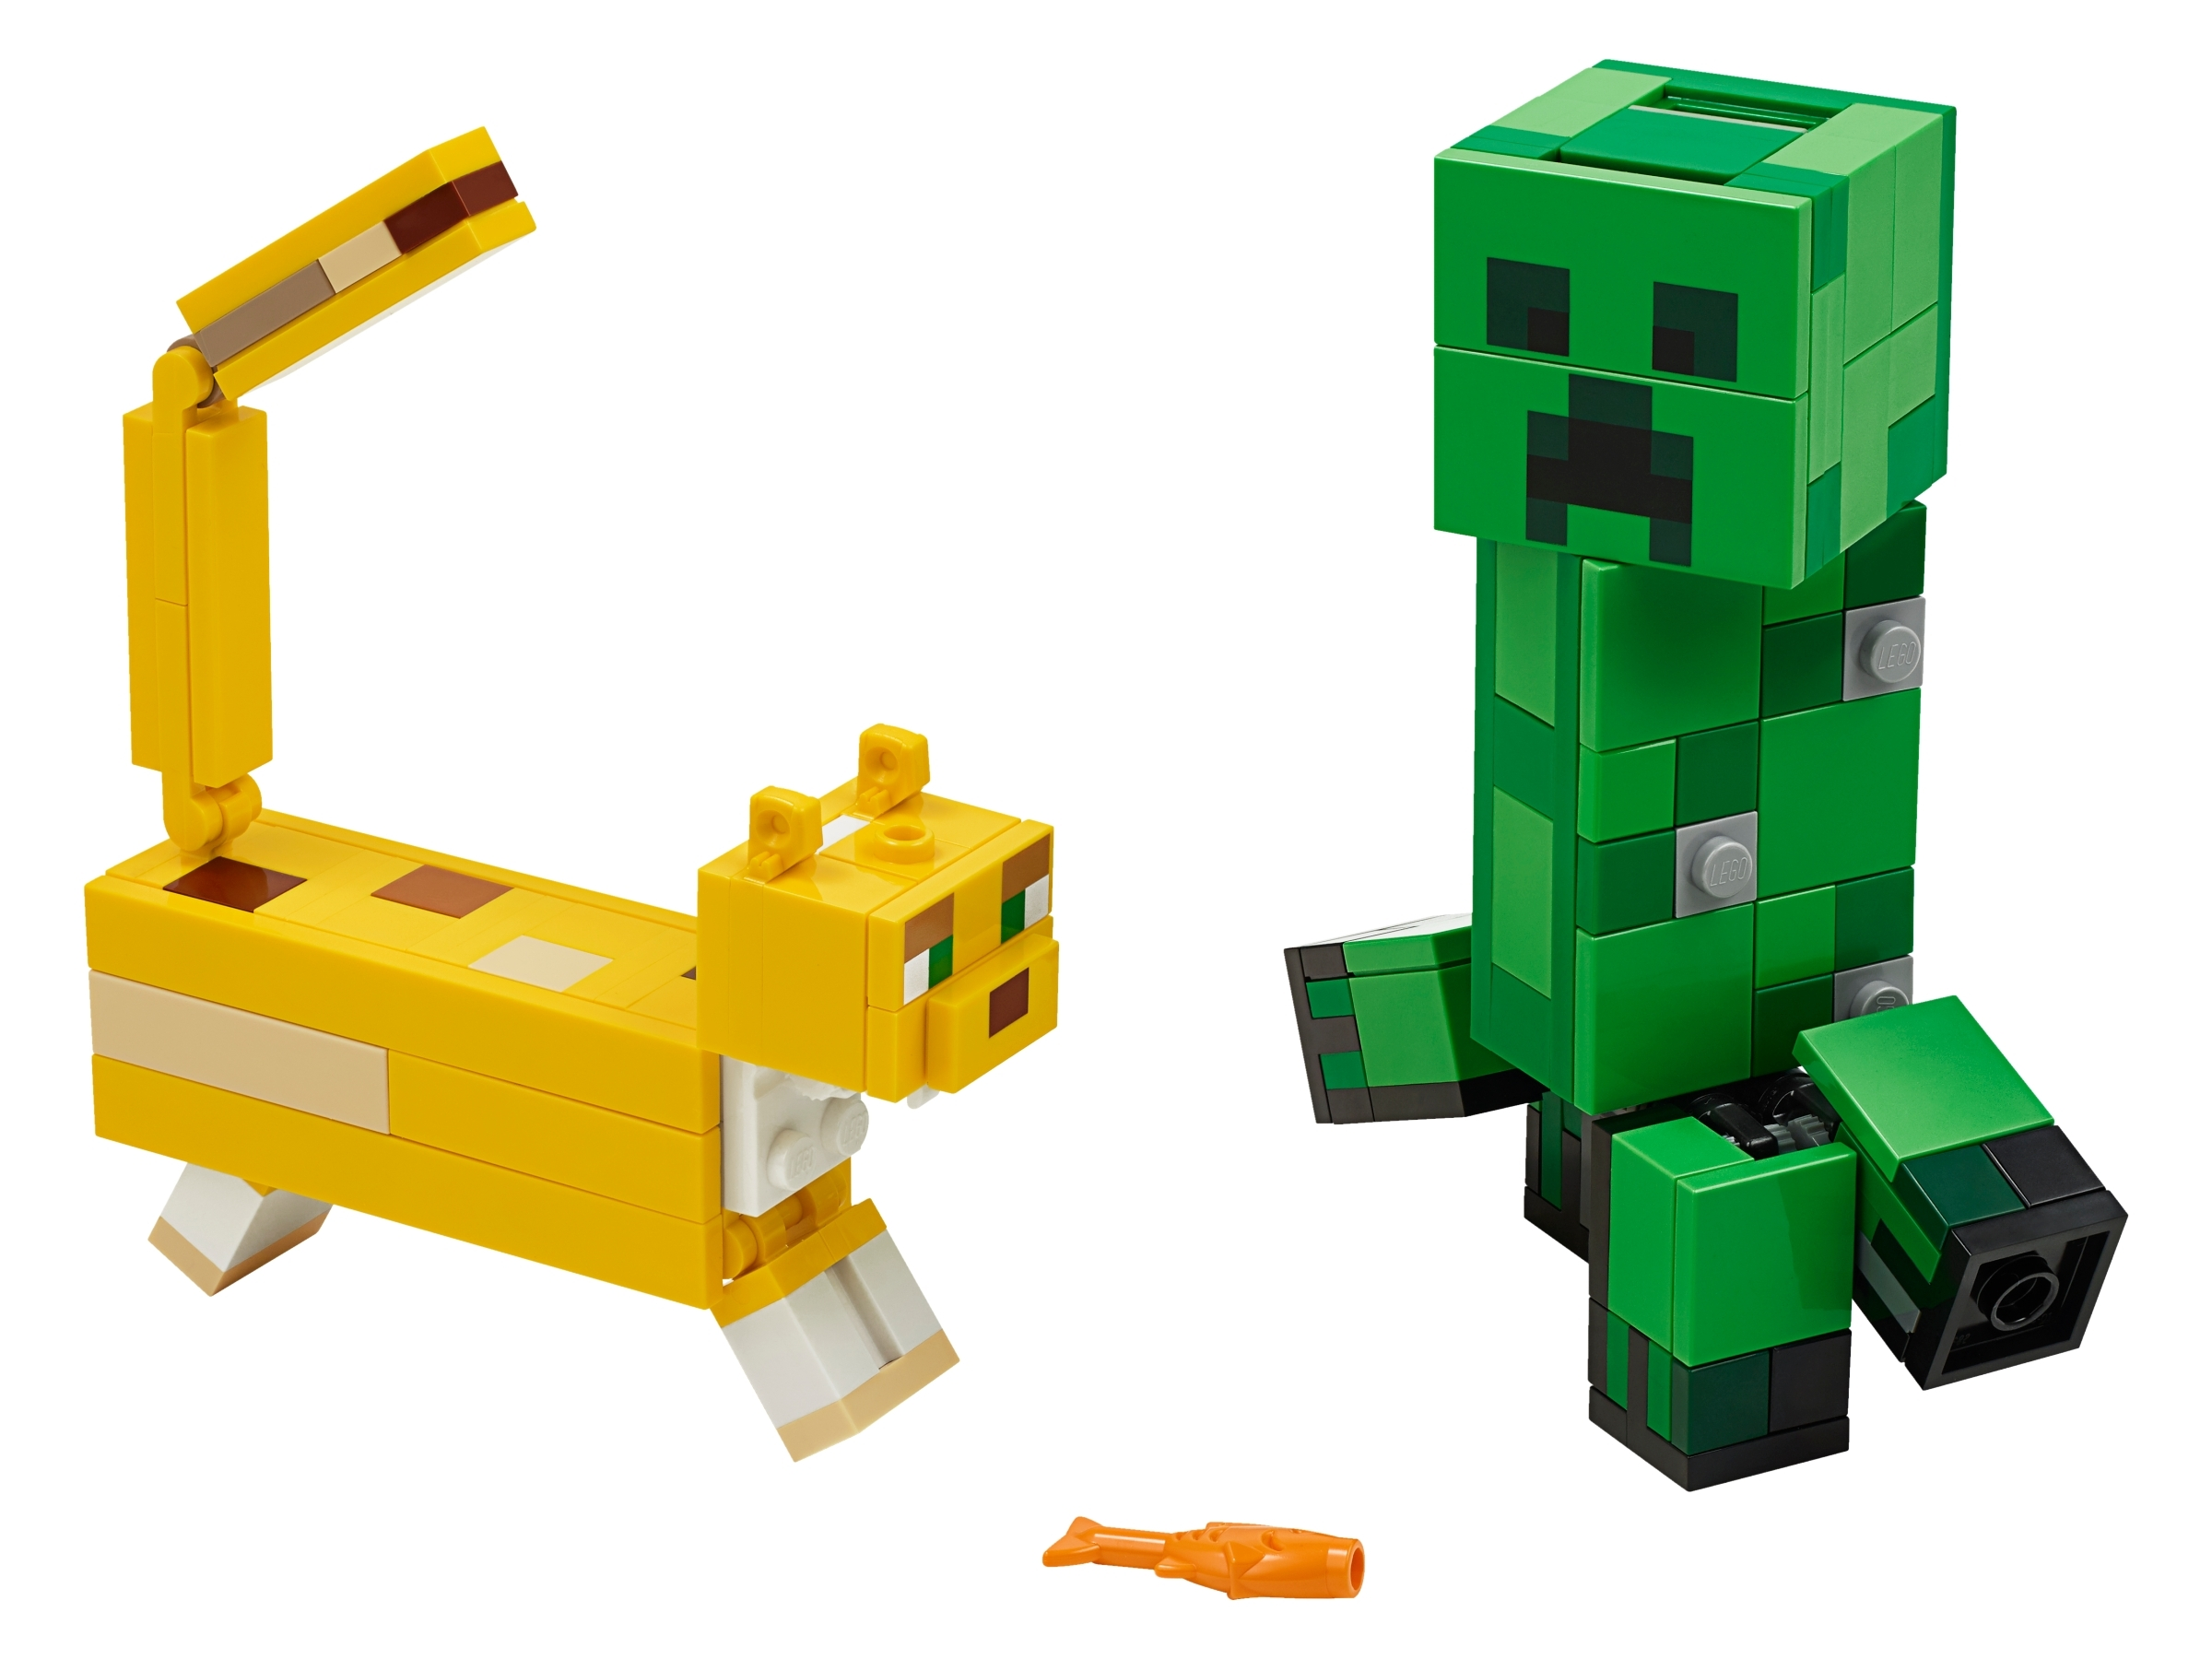 LEGO 21156 Minecraft BigFig Creeper And Ocelot Characters Building Toy Playset